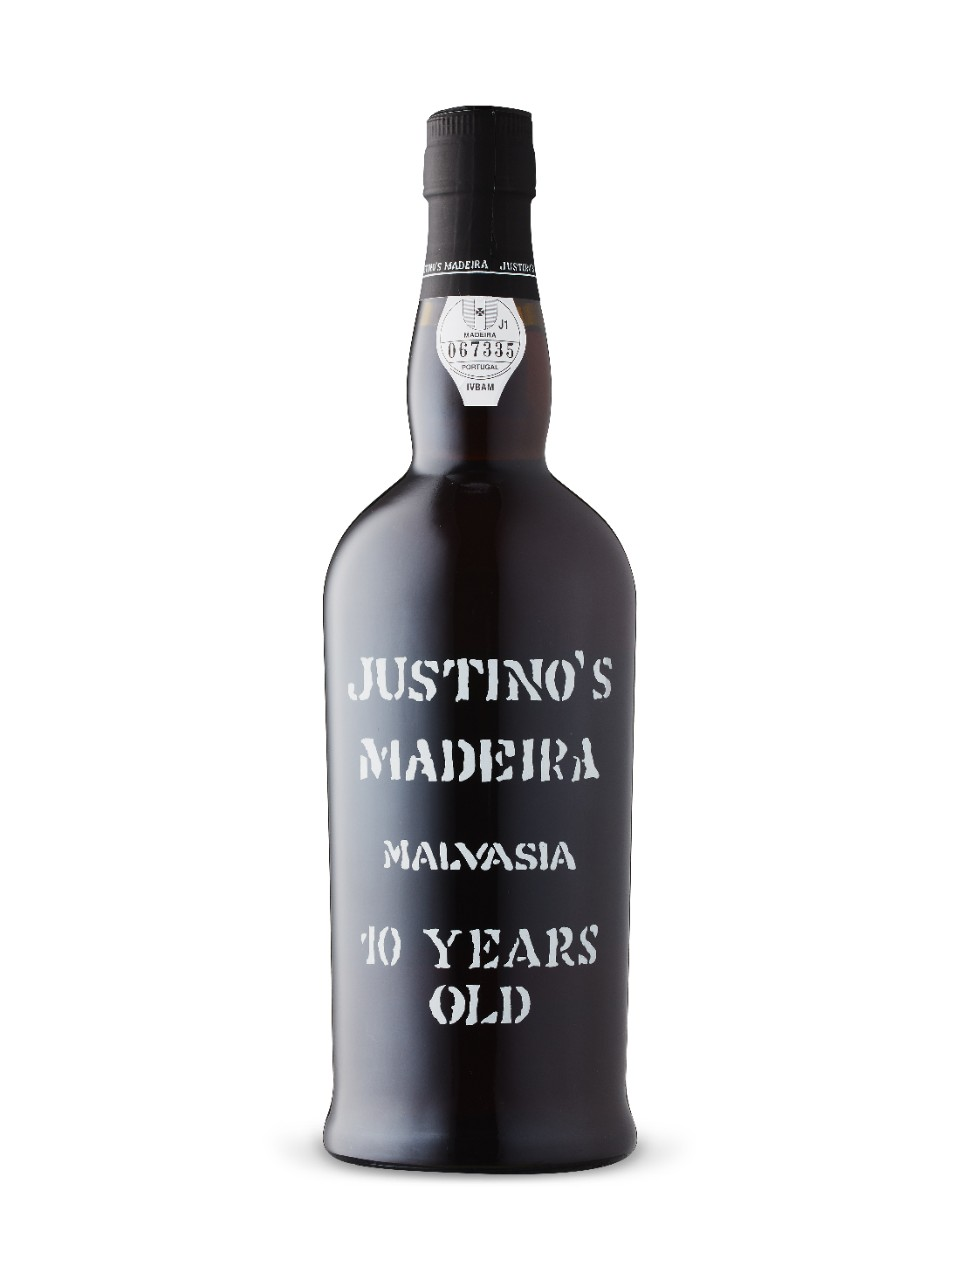 Image for Justino's Madeira 10 Year Old Malvasia from LCBO